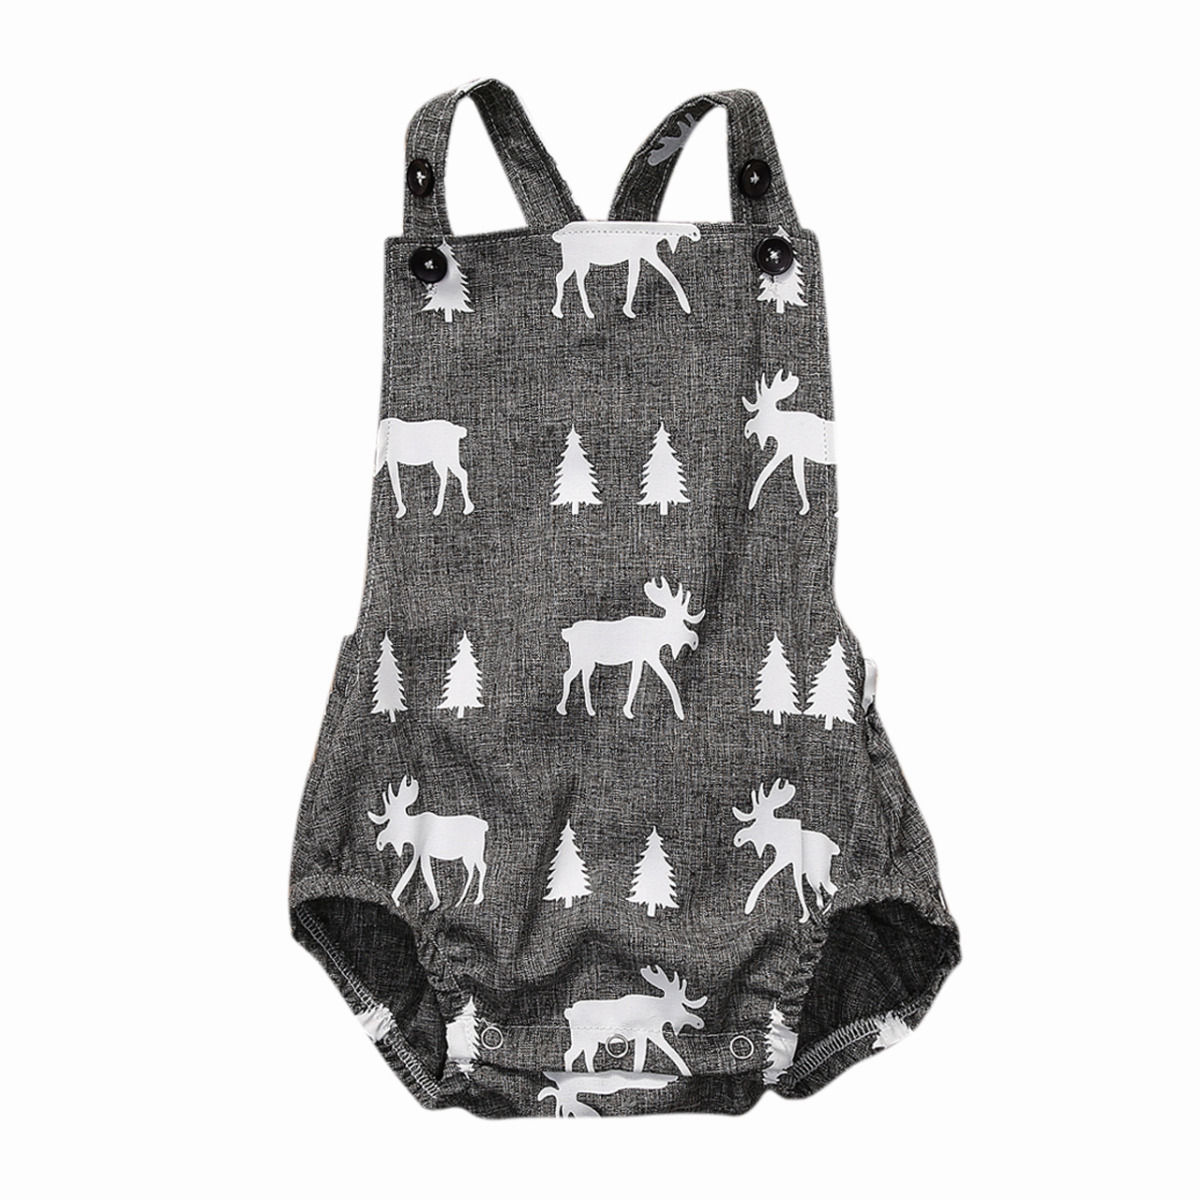 Cute Baby Romper Newborn Baby Boy Girl Fawn Clothes Sleeveless Deer Playsuit Romper Jumpsuit Outfit Sunsuit 0-2Y 2017 new sequins baby girl romper clothes summer sleeveless tutu skirted toddler kids jumpsuit outfit sunsuit princess costume